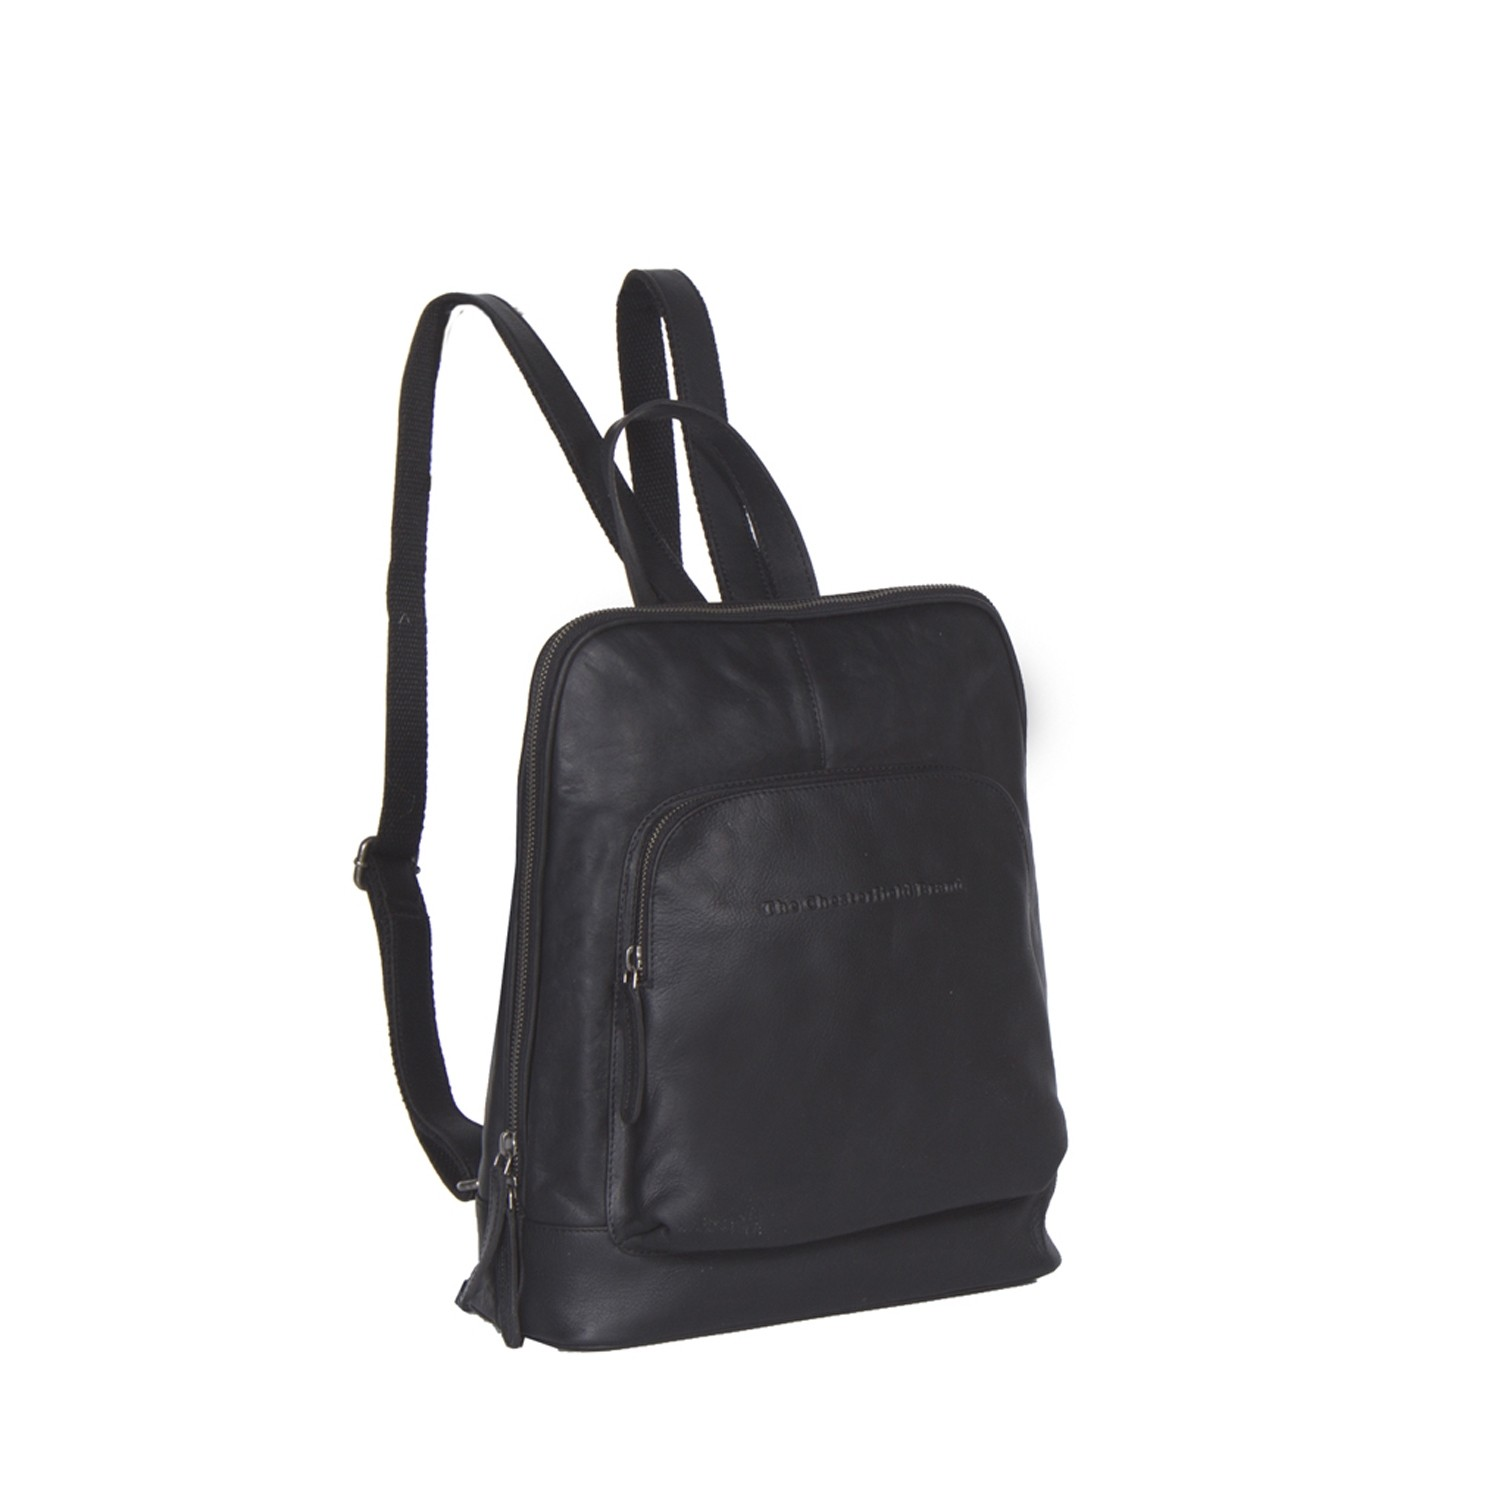 Image of Chesterfield Leather Backpack Black Naomi